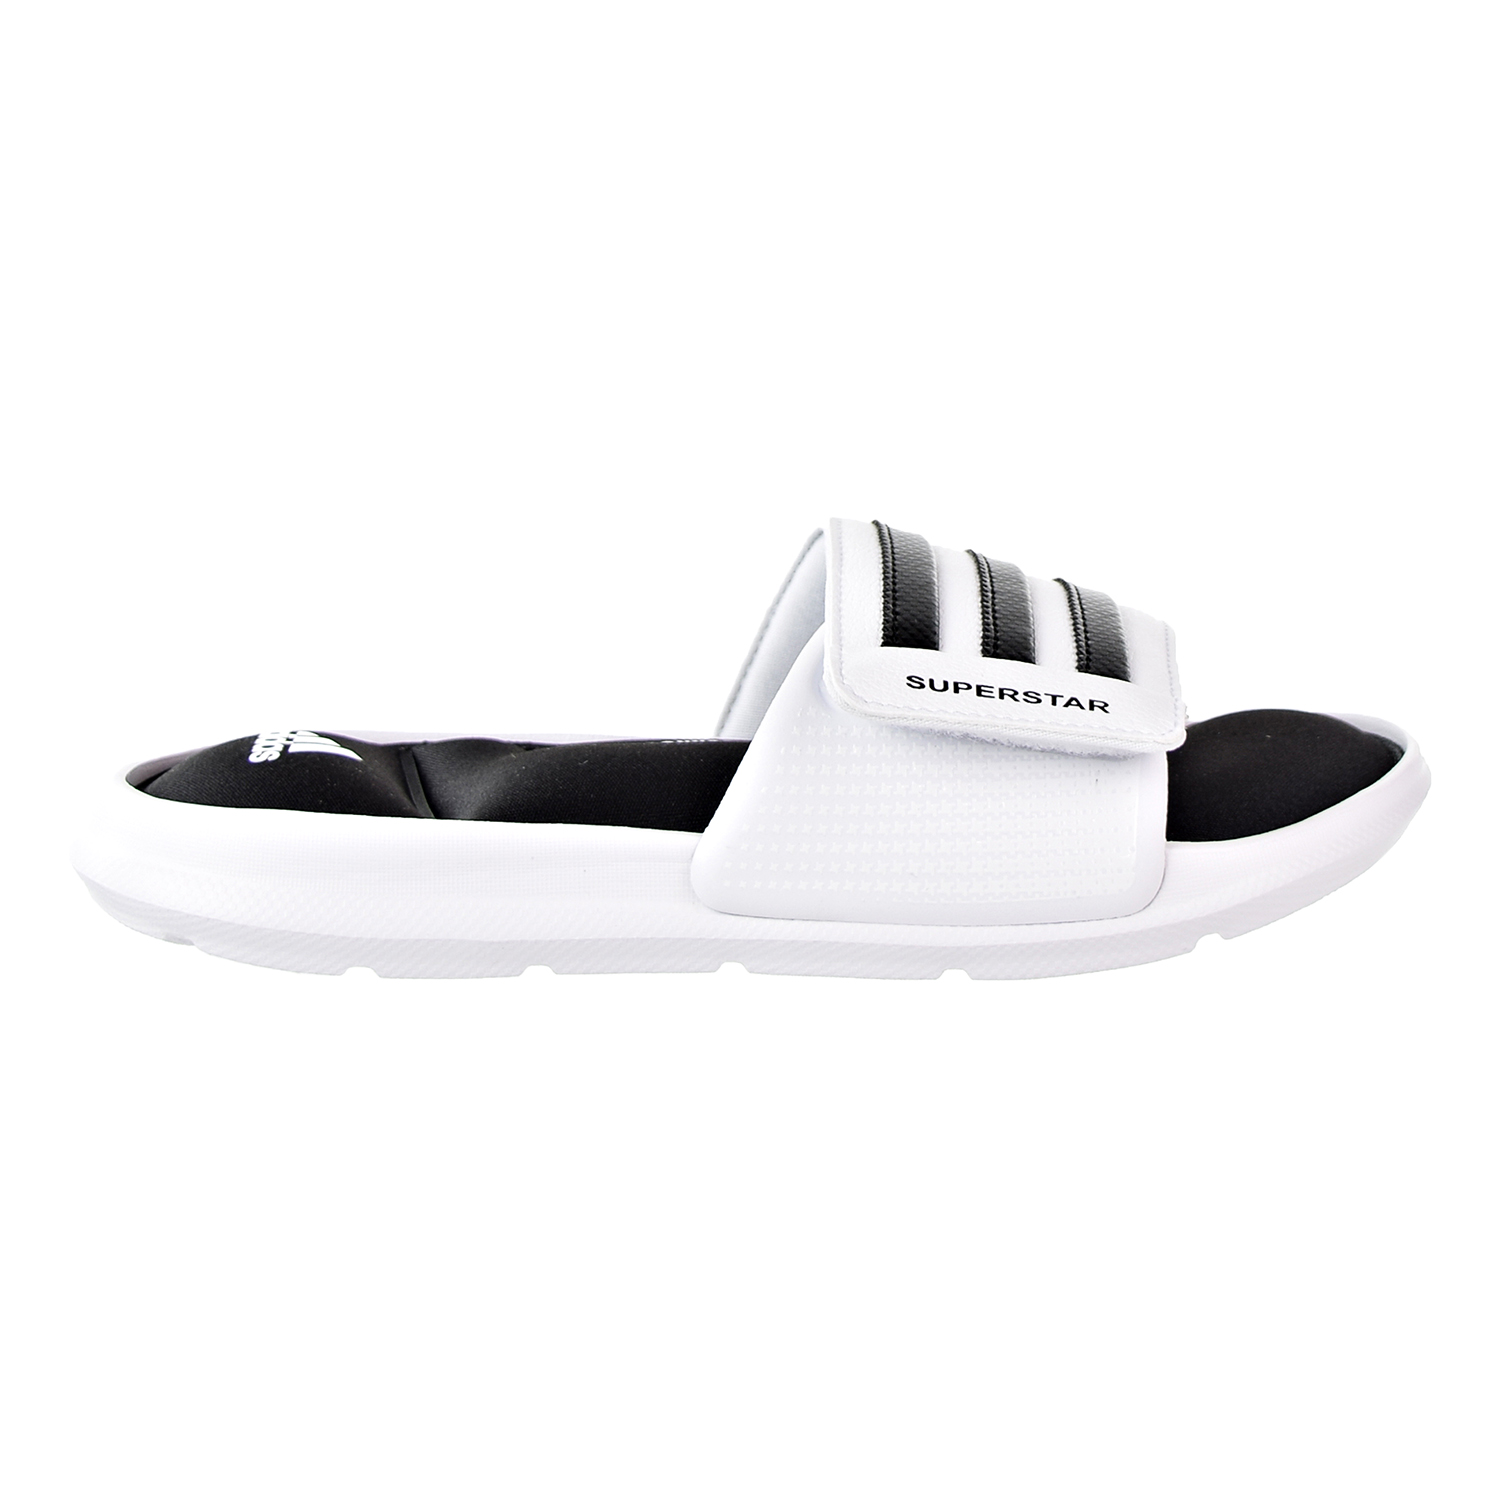 65995f462592 Adidas Superstar 5G Men s Slide Sandals White Black AC8702